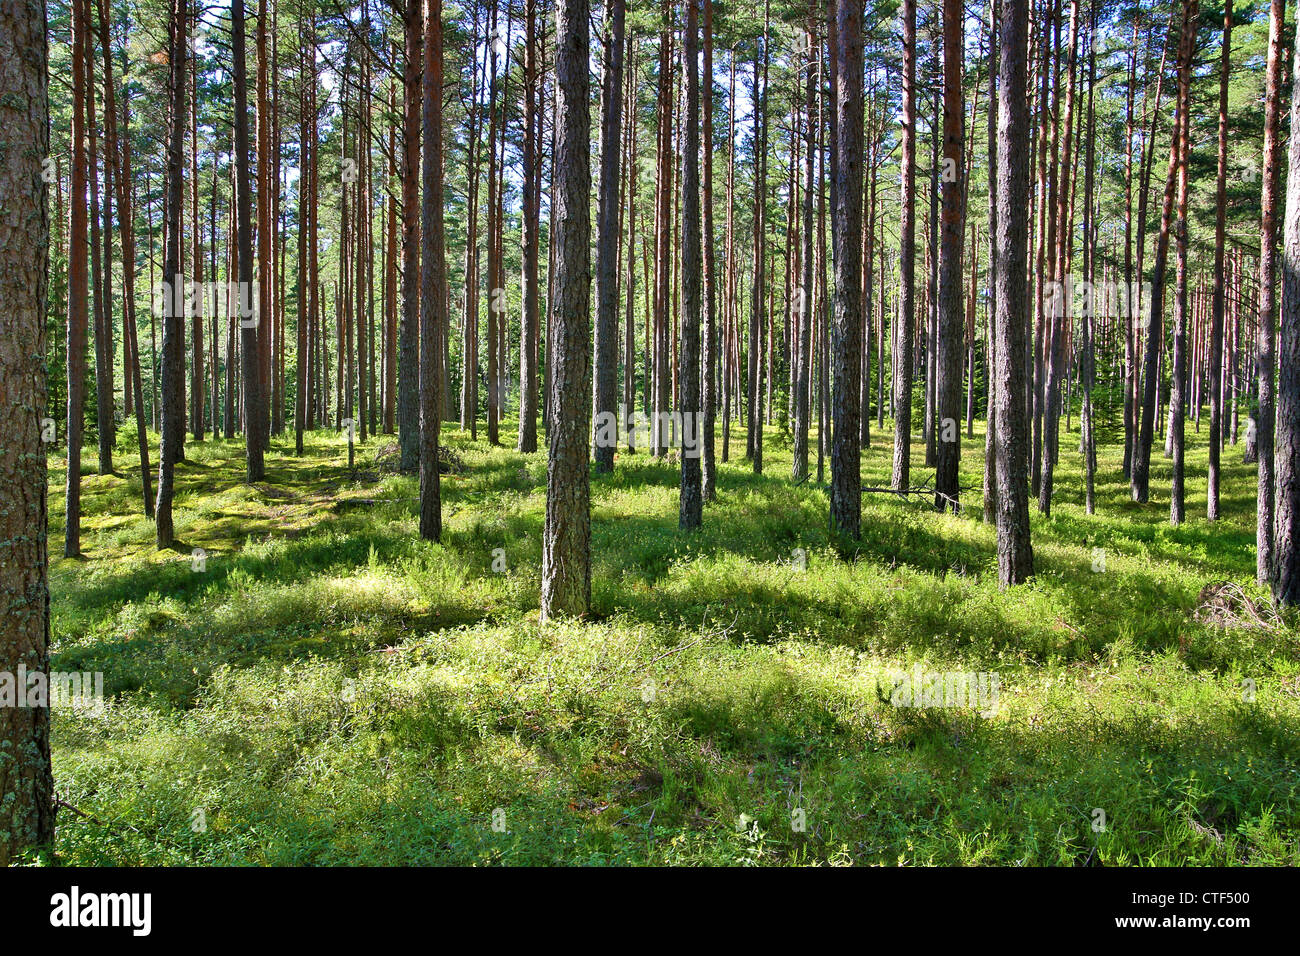 Grass and trees in forest touched by sunlight - Stock Image